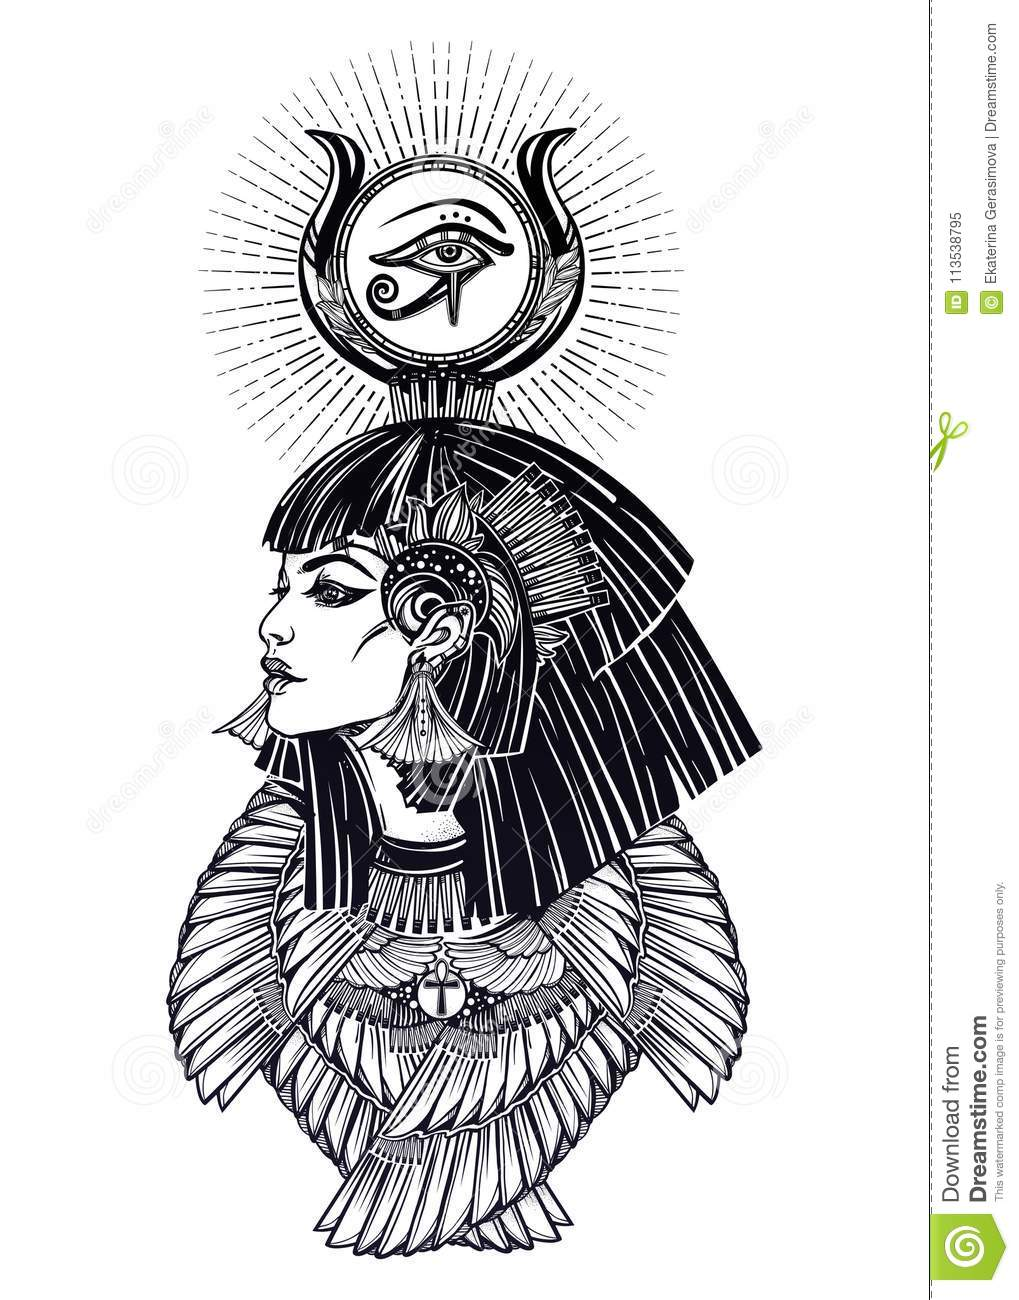 bbadbbc2f Portrait Of A Beautiful Egyptian Goddess. Stock Vector ...